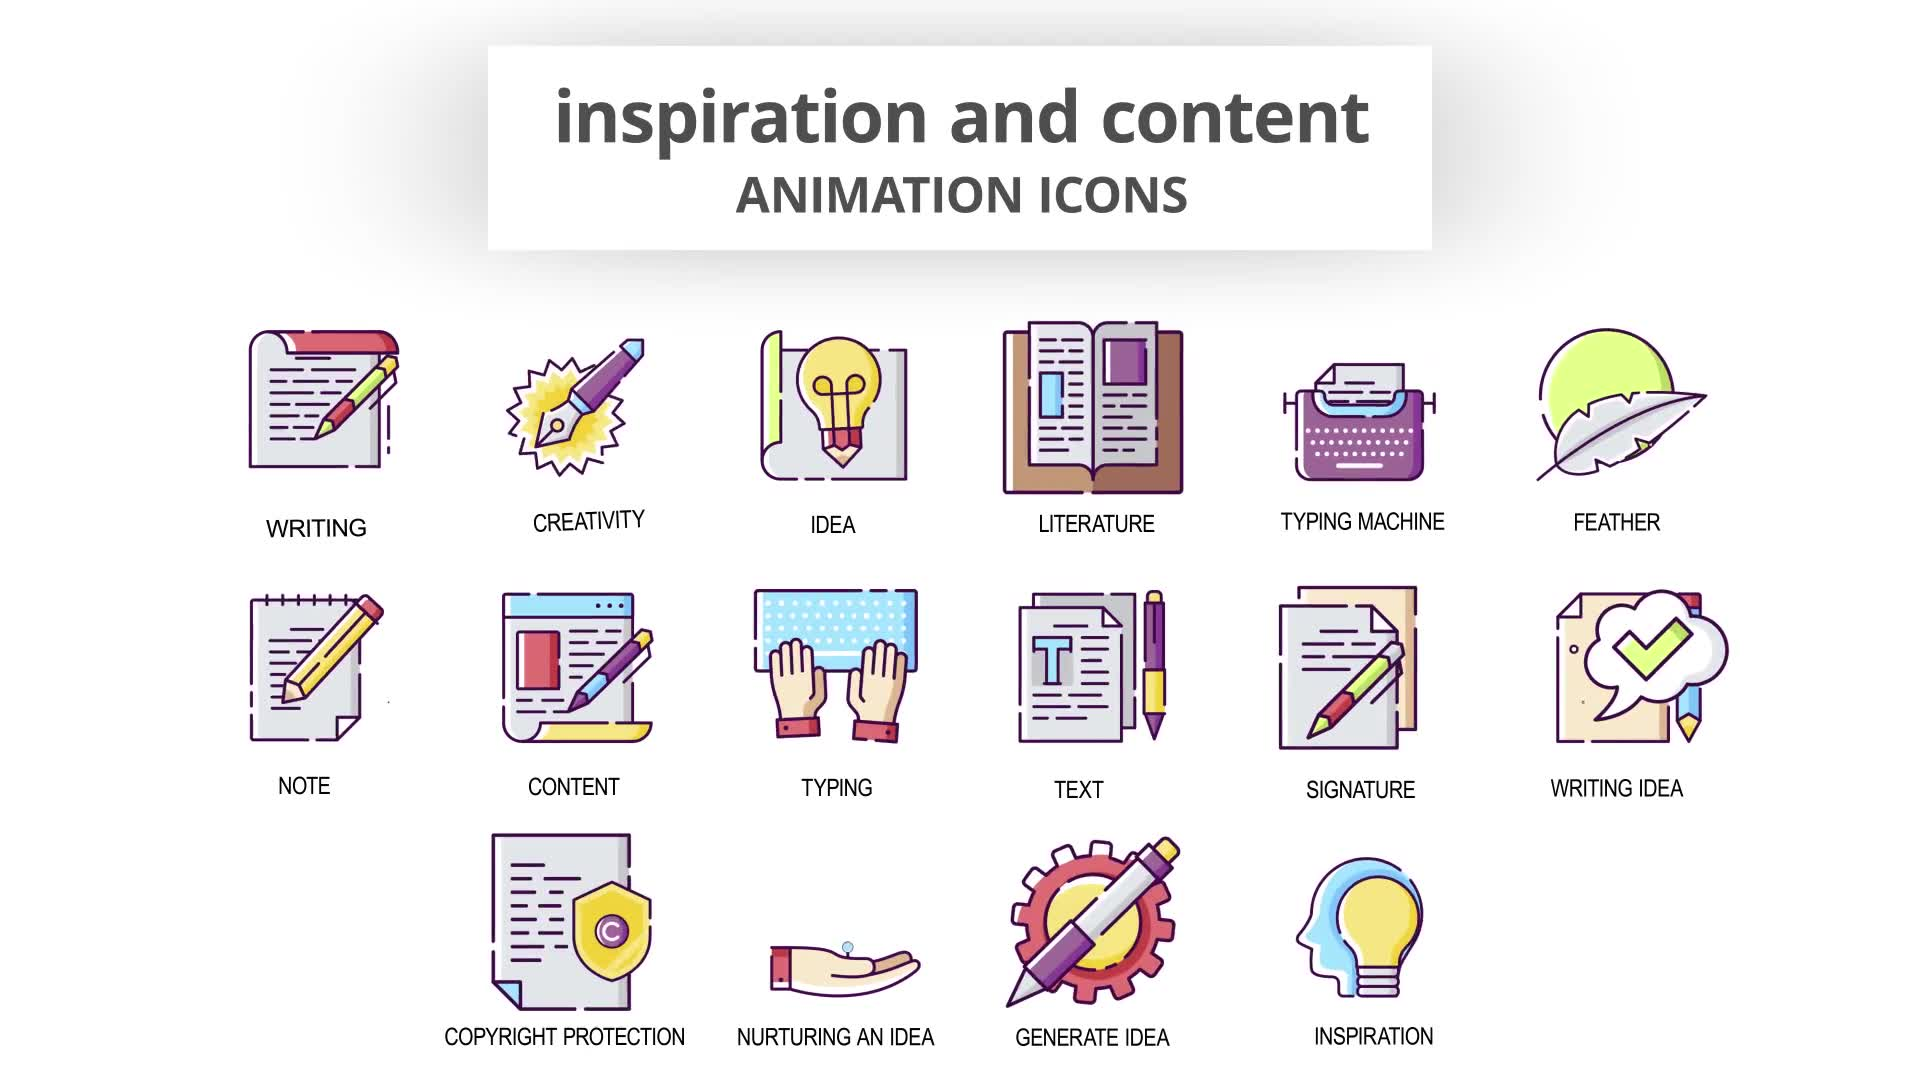 Inspiration & Content Animation Icons Videohive 30041554 After Effects Image 7